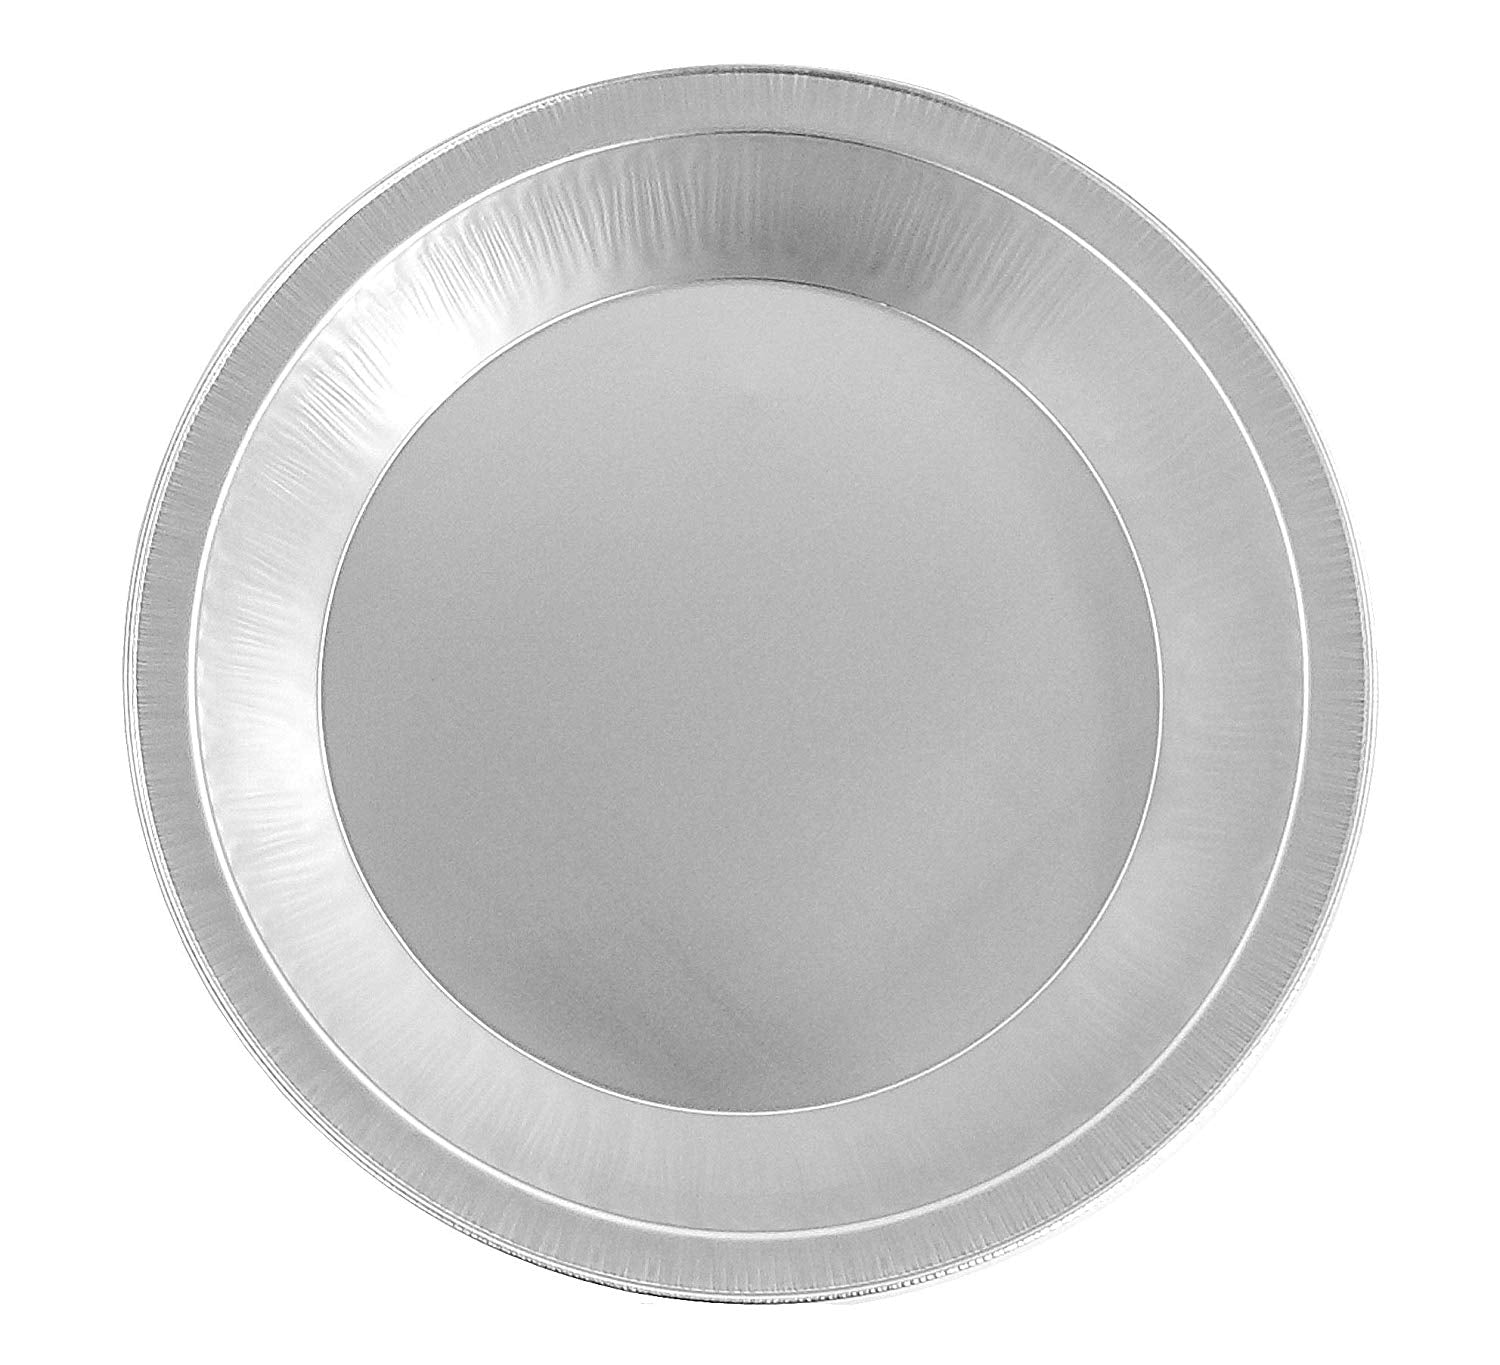 "Handi-Foil 9"" Smooth-Wall Deep Foil Pie Pan 1 3/16"" Deep 200/CS"